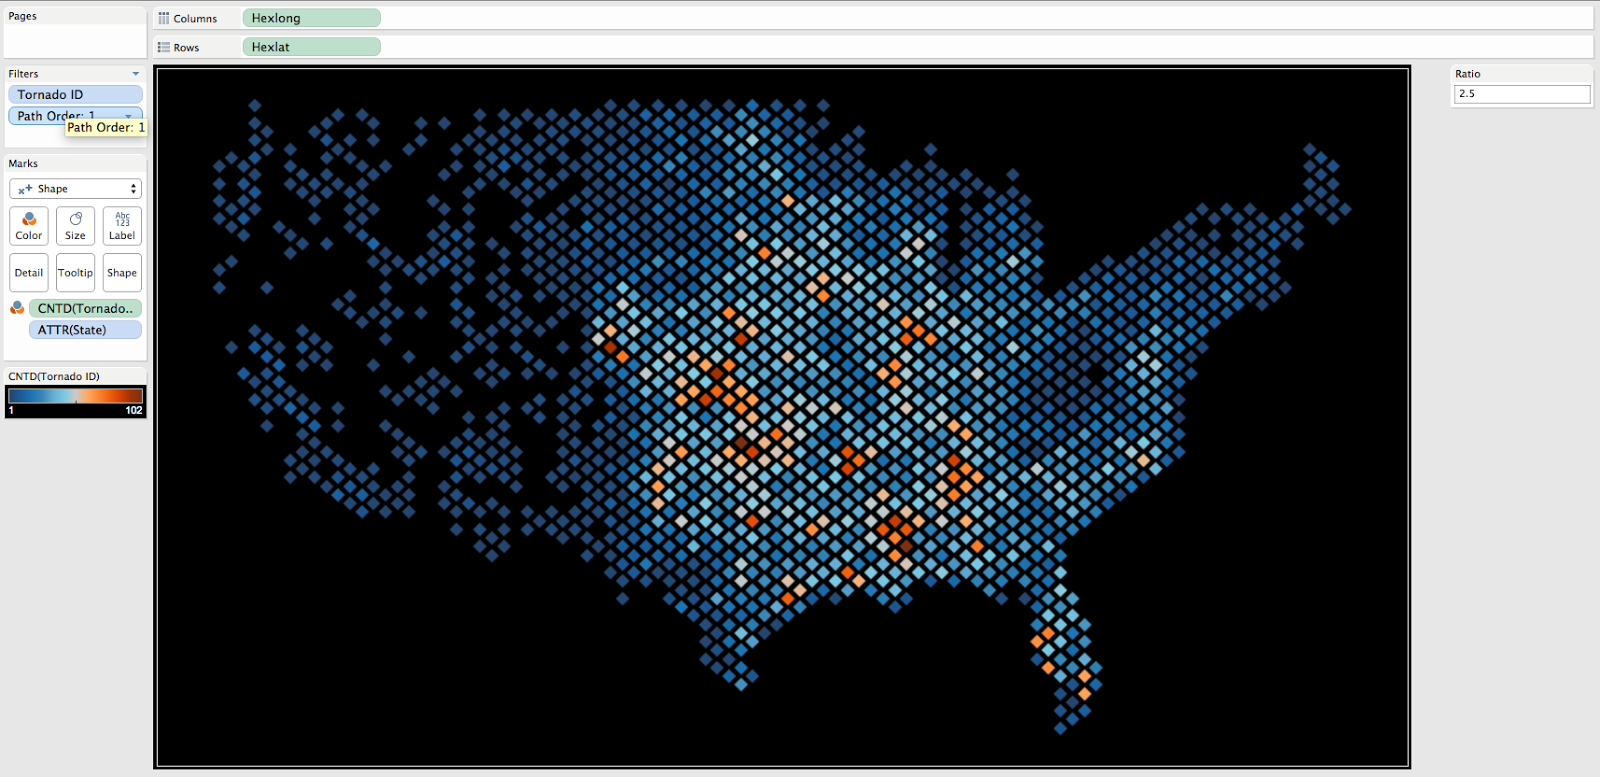 How To Density Maps Using Hexbins In Tableau